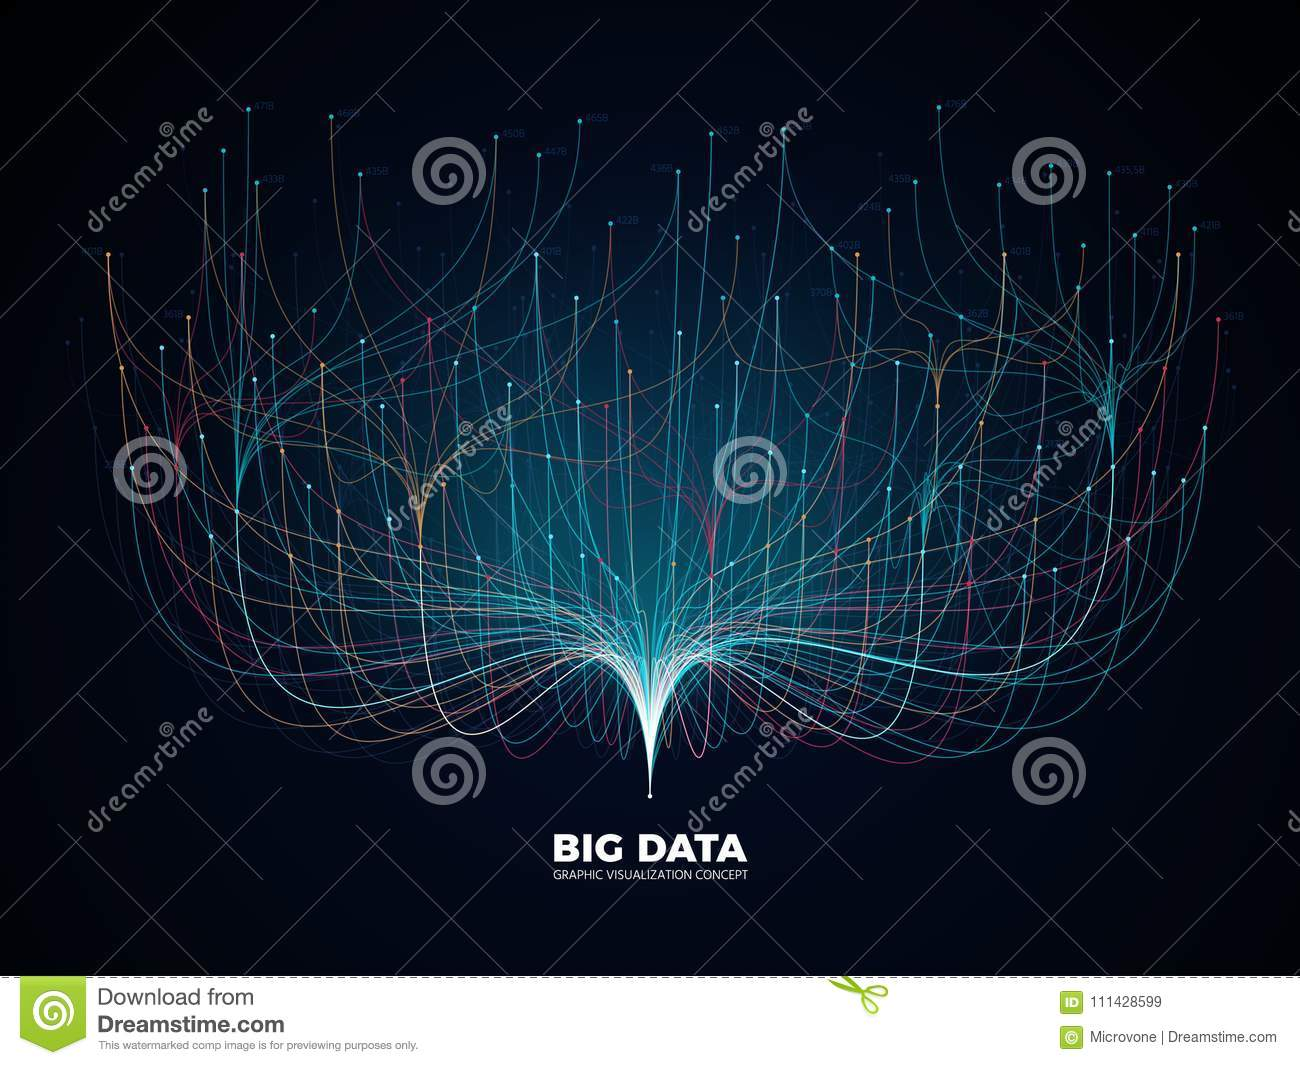 Big Data Network Visualization Concept  Digital Music Industry